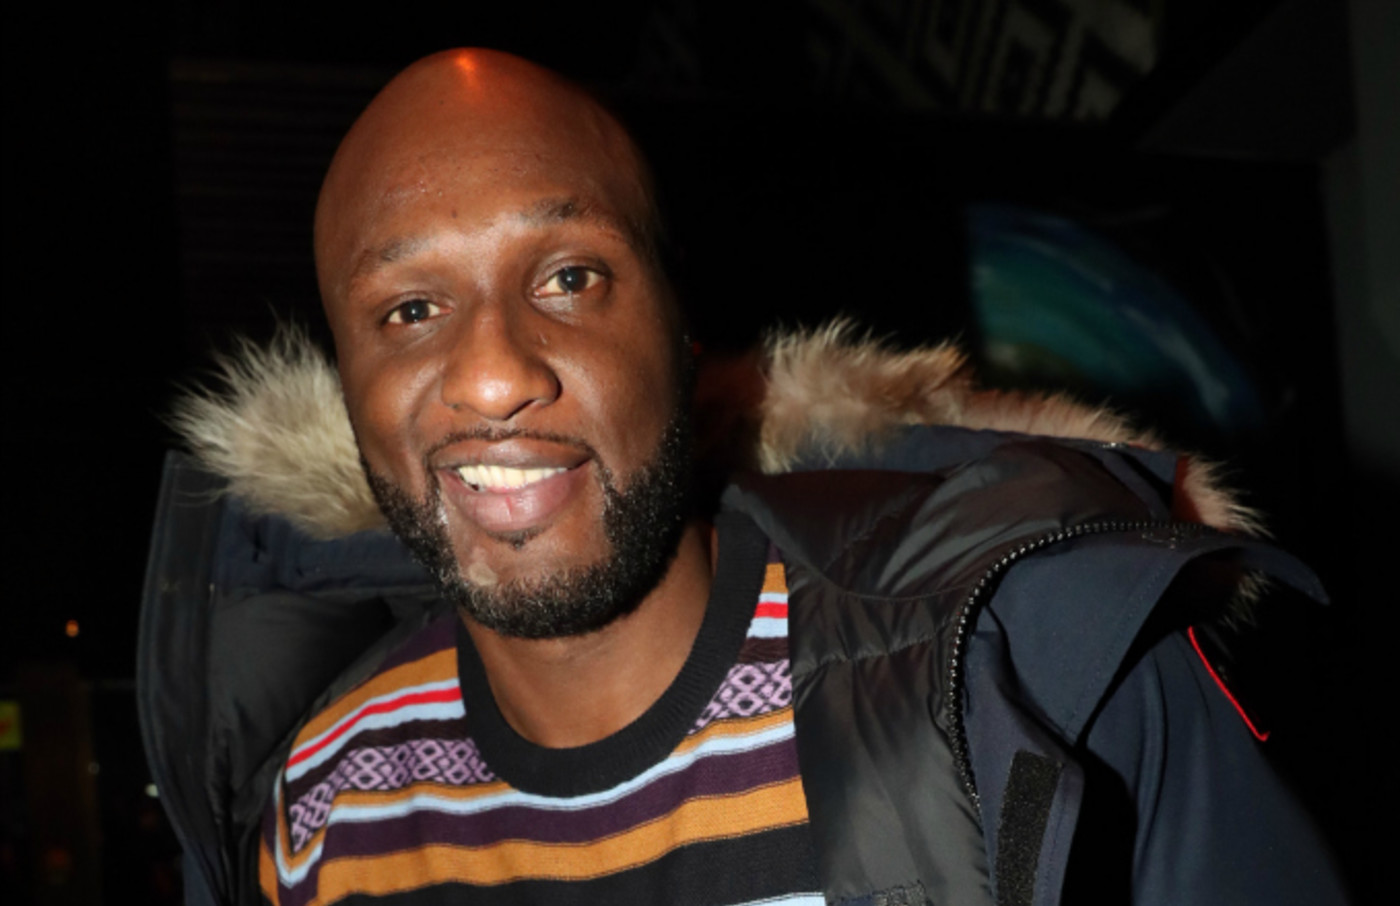 Lamar Odom attends RAYVYN In Concert at S.O.B.'s